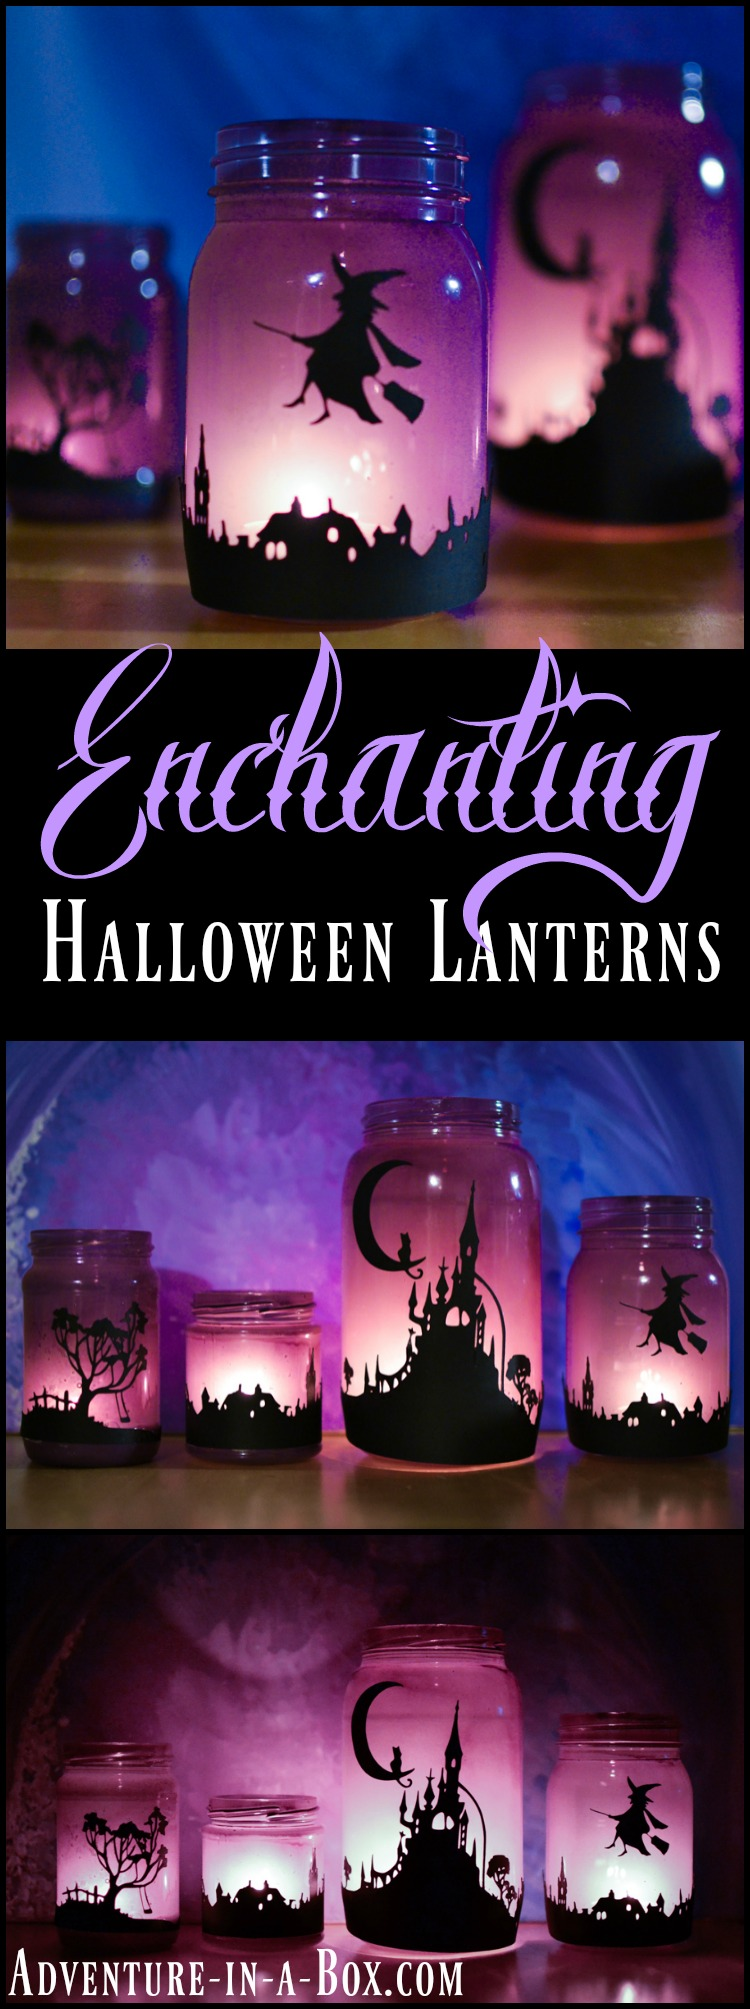 Make A Set Of Enchanting Halloween Lanterns From Mason Jars, Suitable For  Elegant Halloween Party